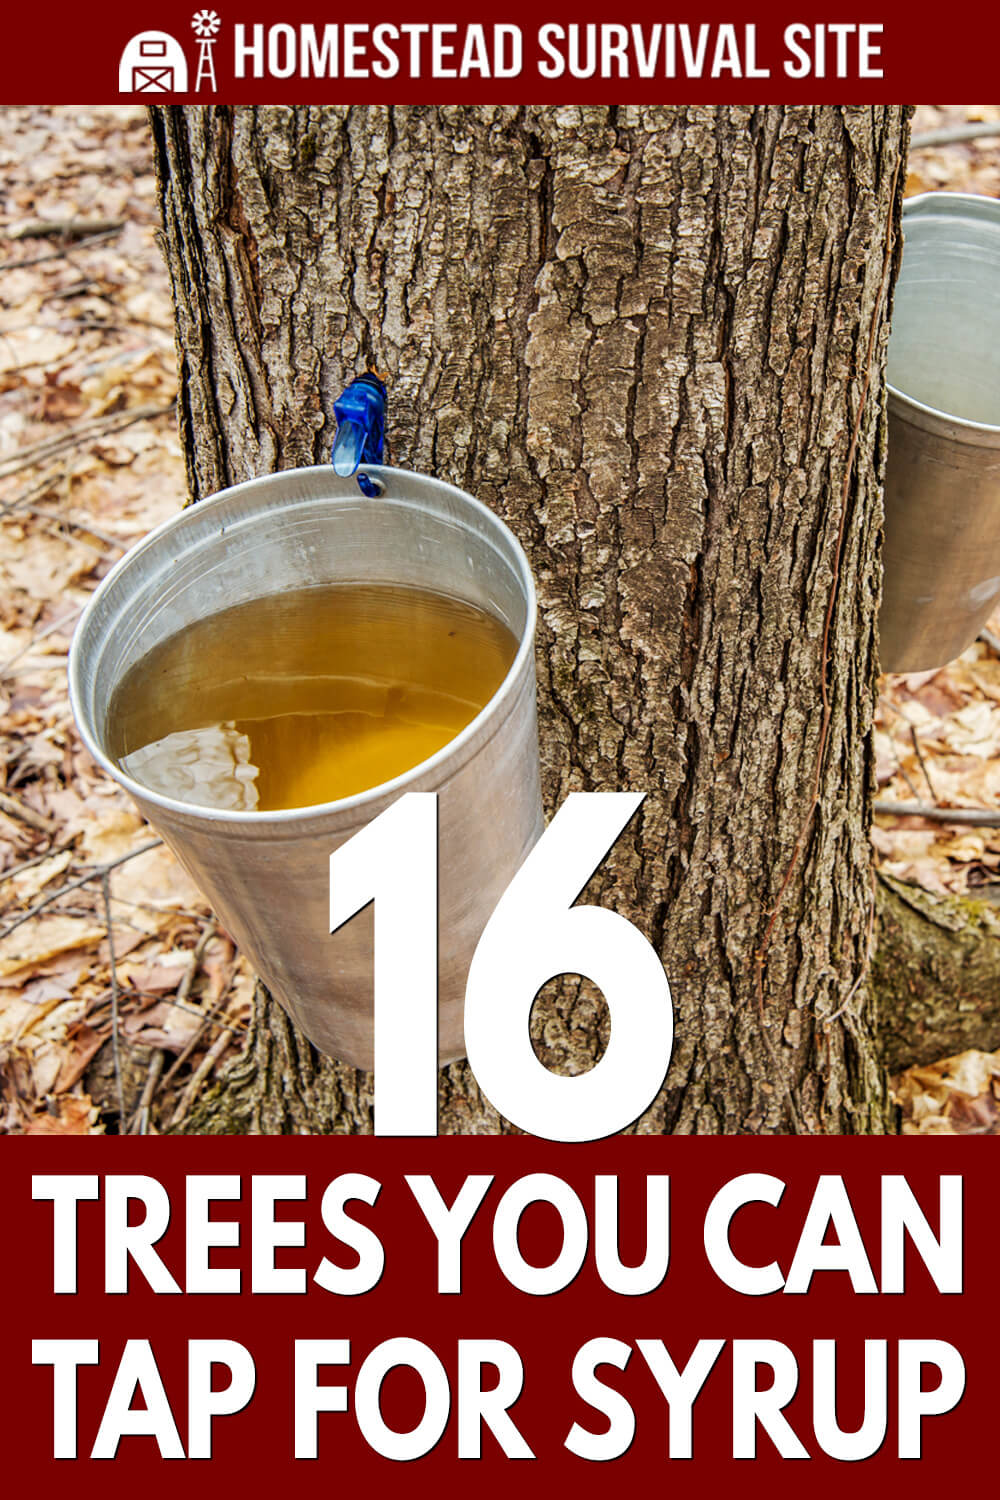 16 Trees You Can Tap for Syrup